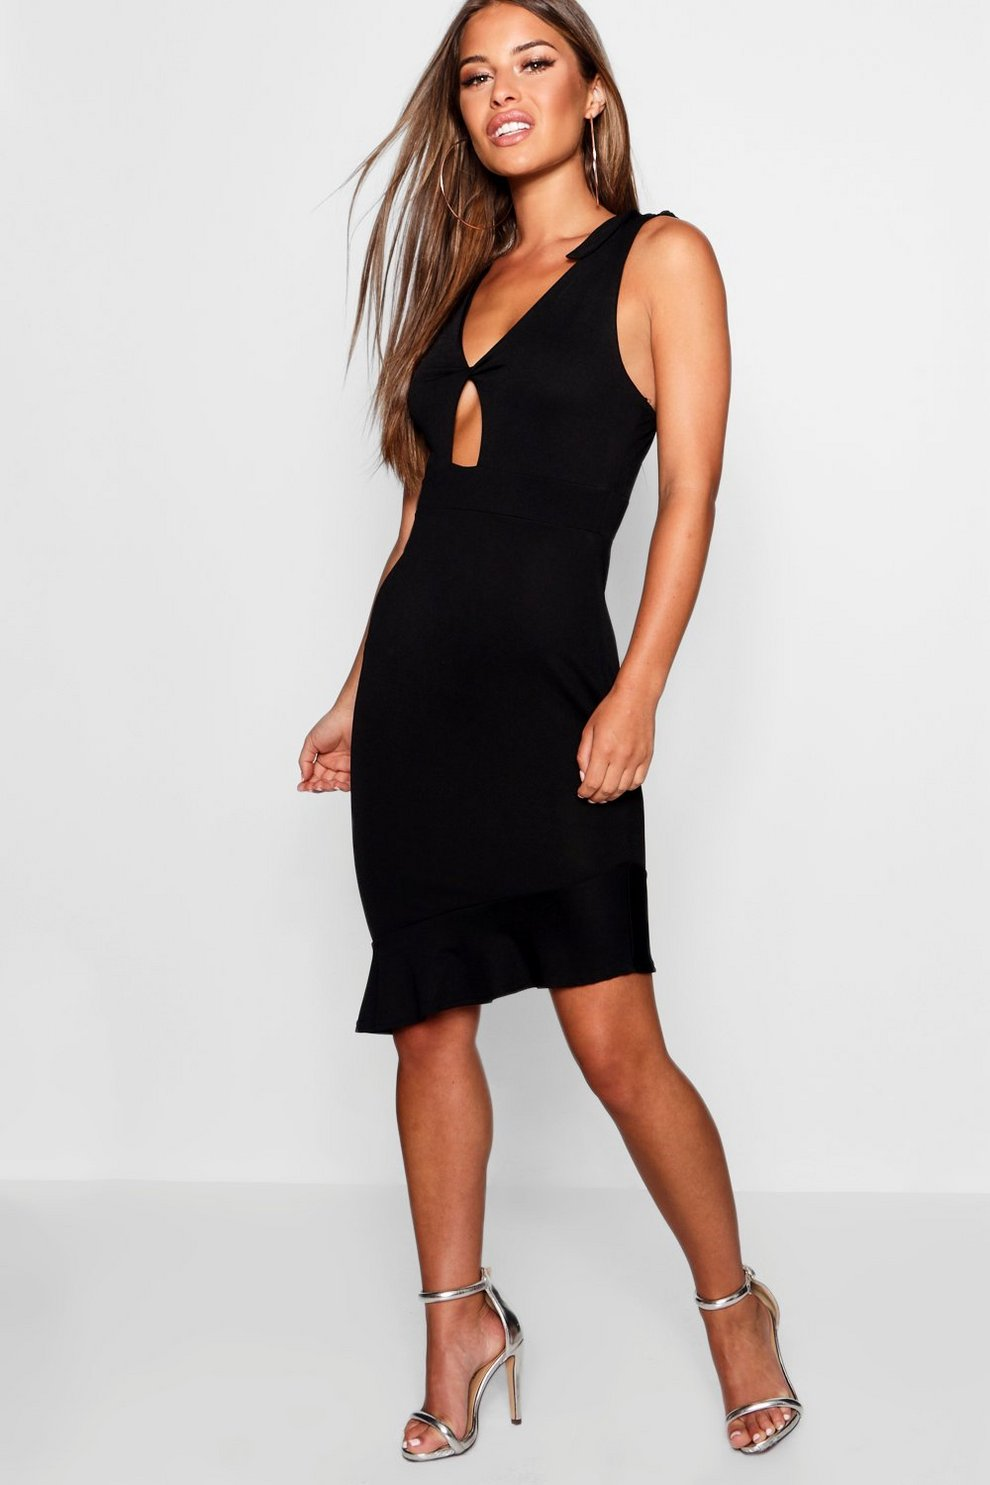 Buy Cheap Brand New Unisex Boohoo Petite Ruffle Asymmetric Hem Dress Clearance Outlet Store Get Where To Buy Cheap Real Discount Footlocker Pictures GT9xt